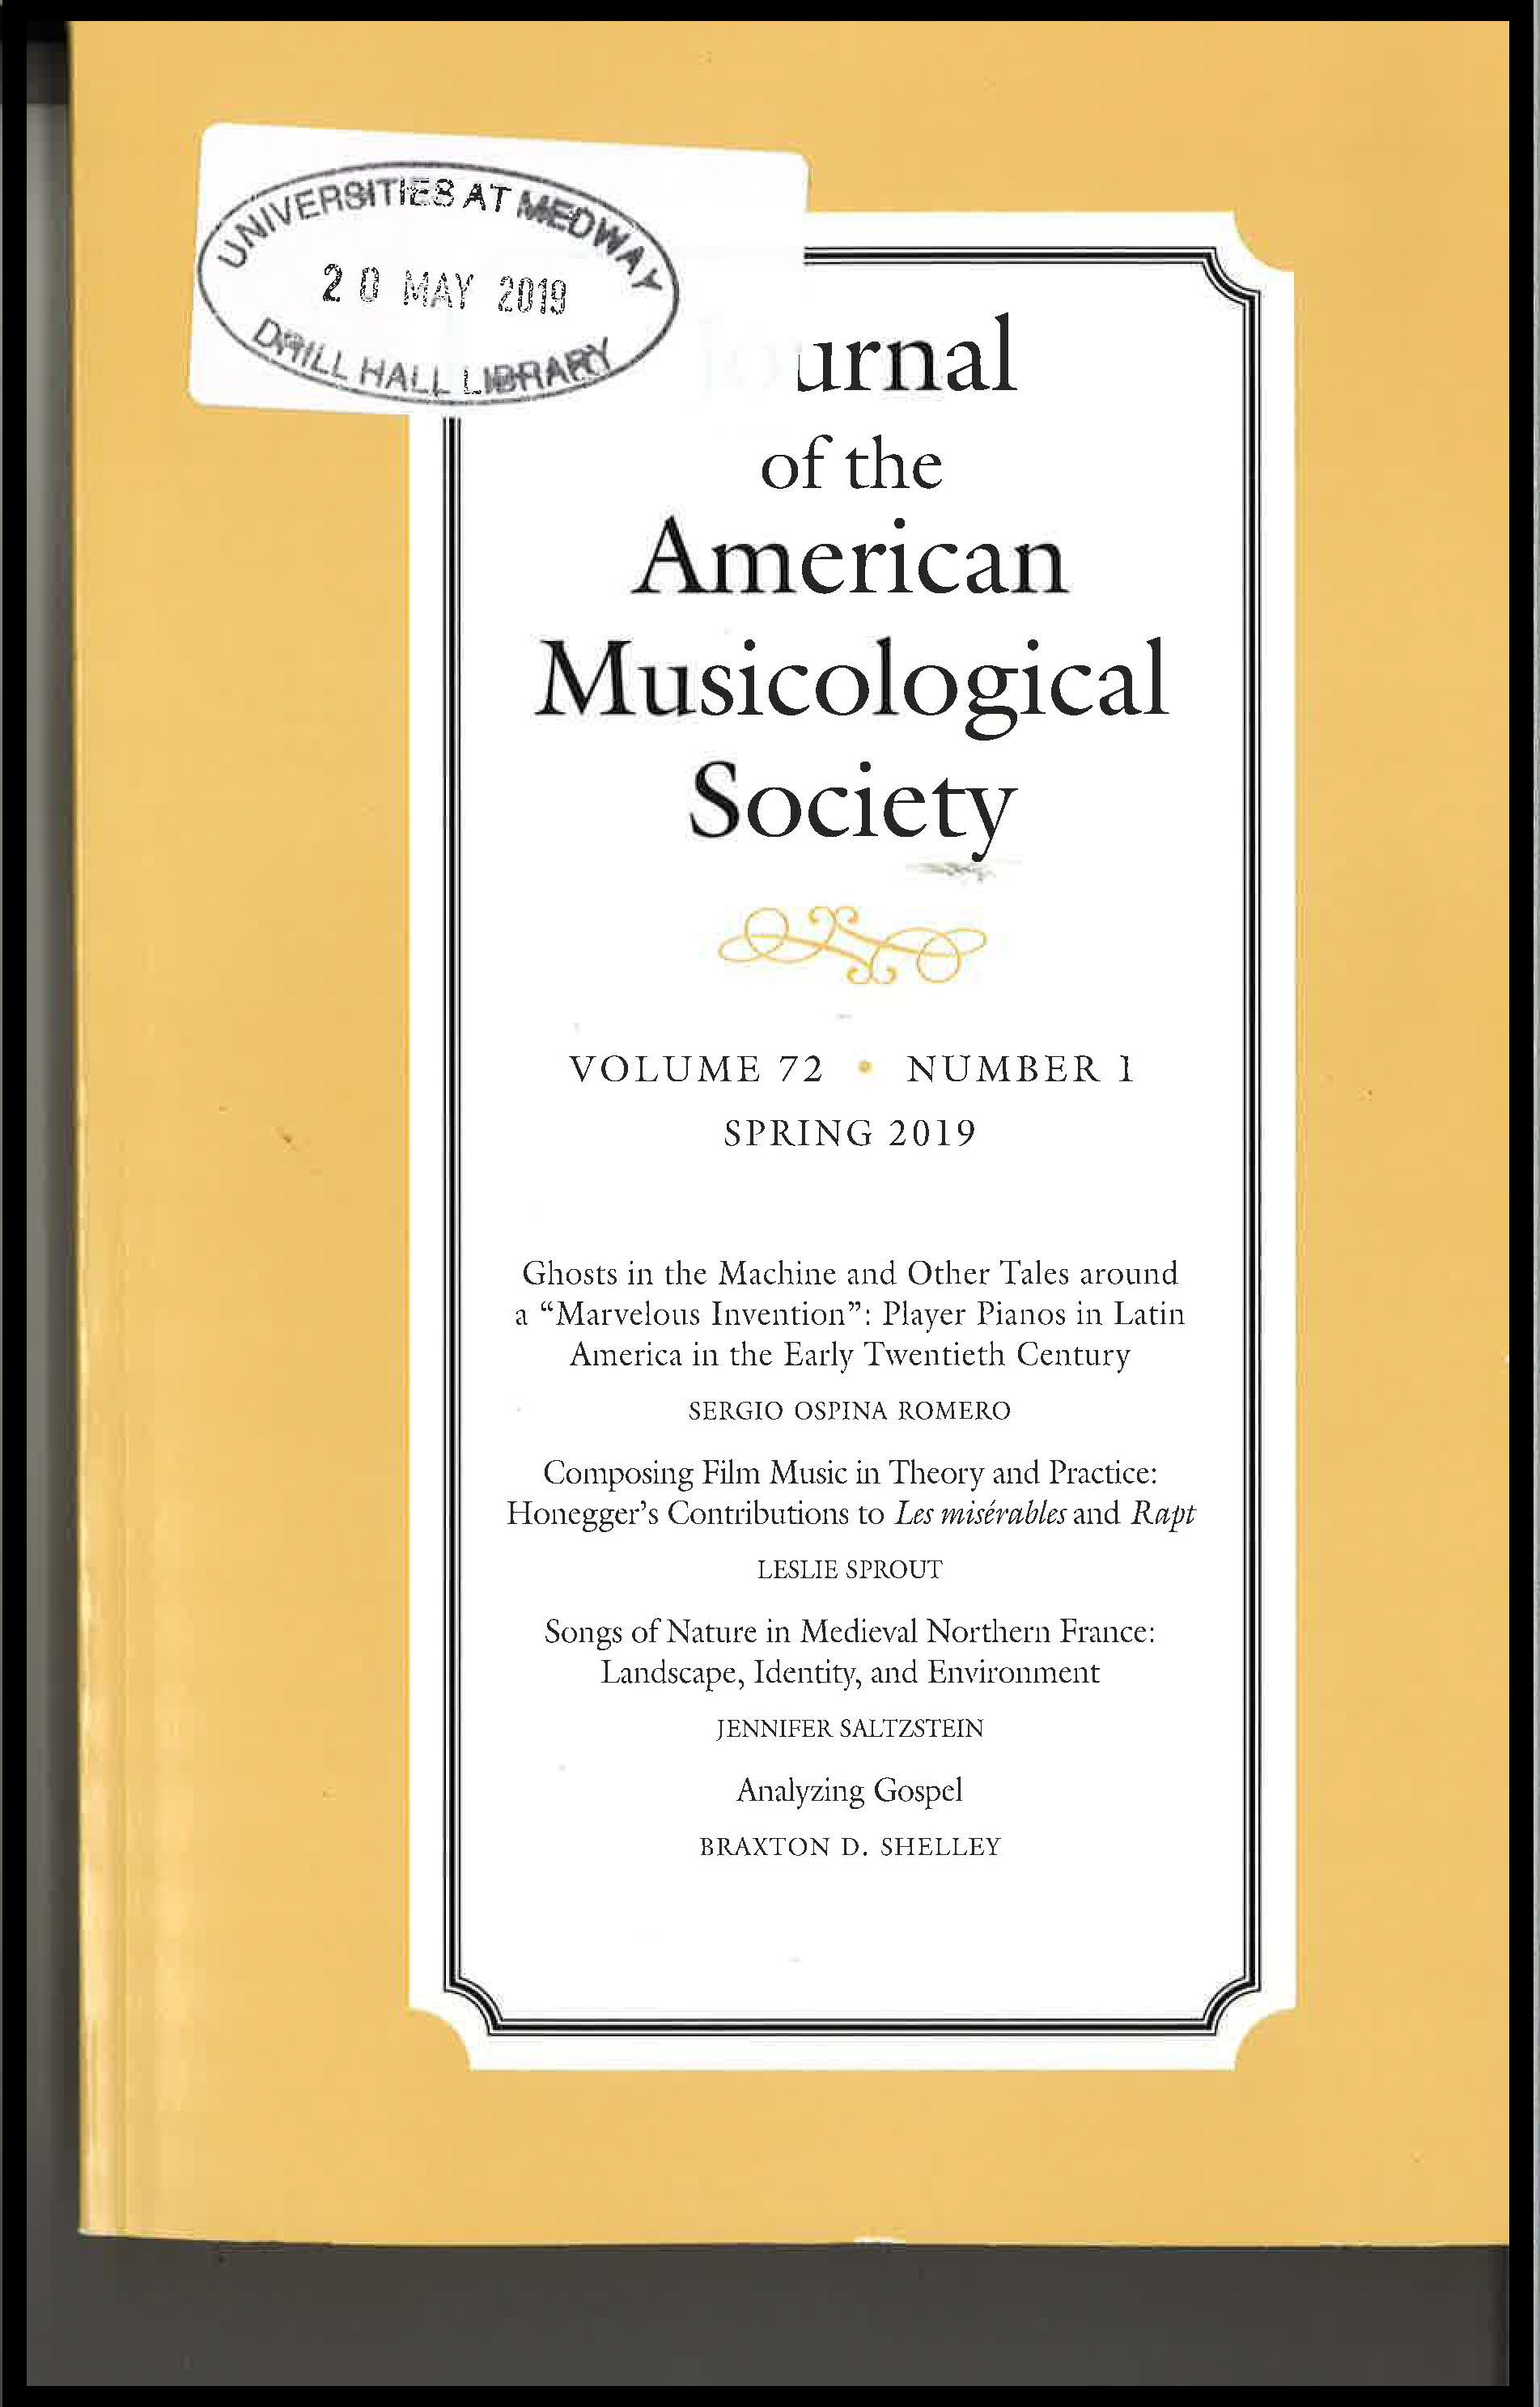 Cover of the Journal of the American Musicological Society